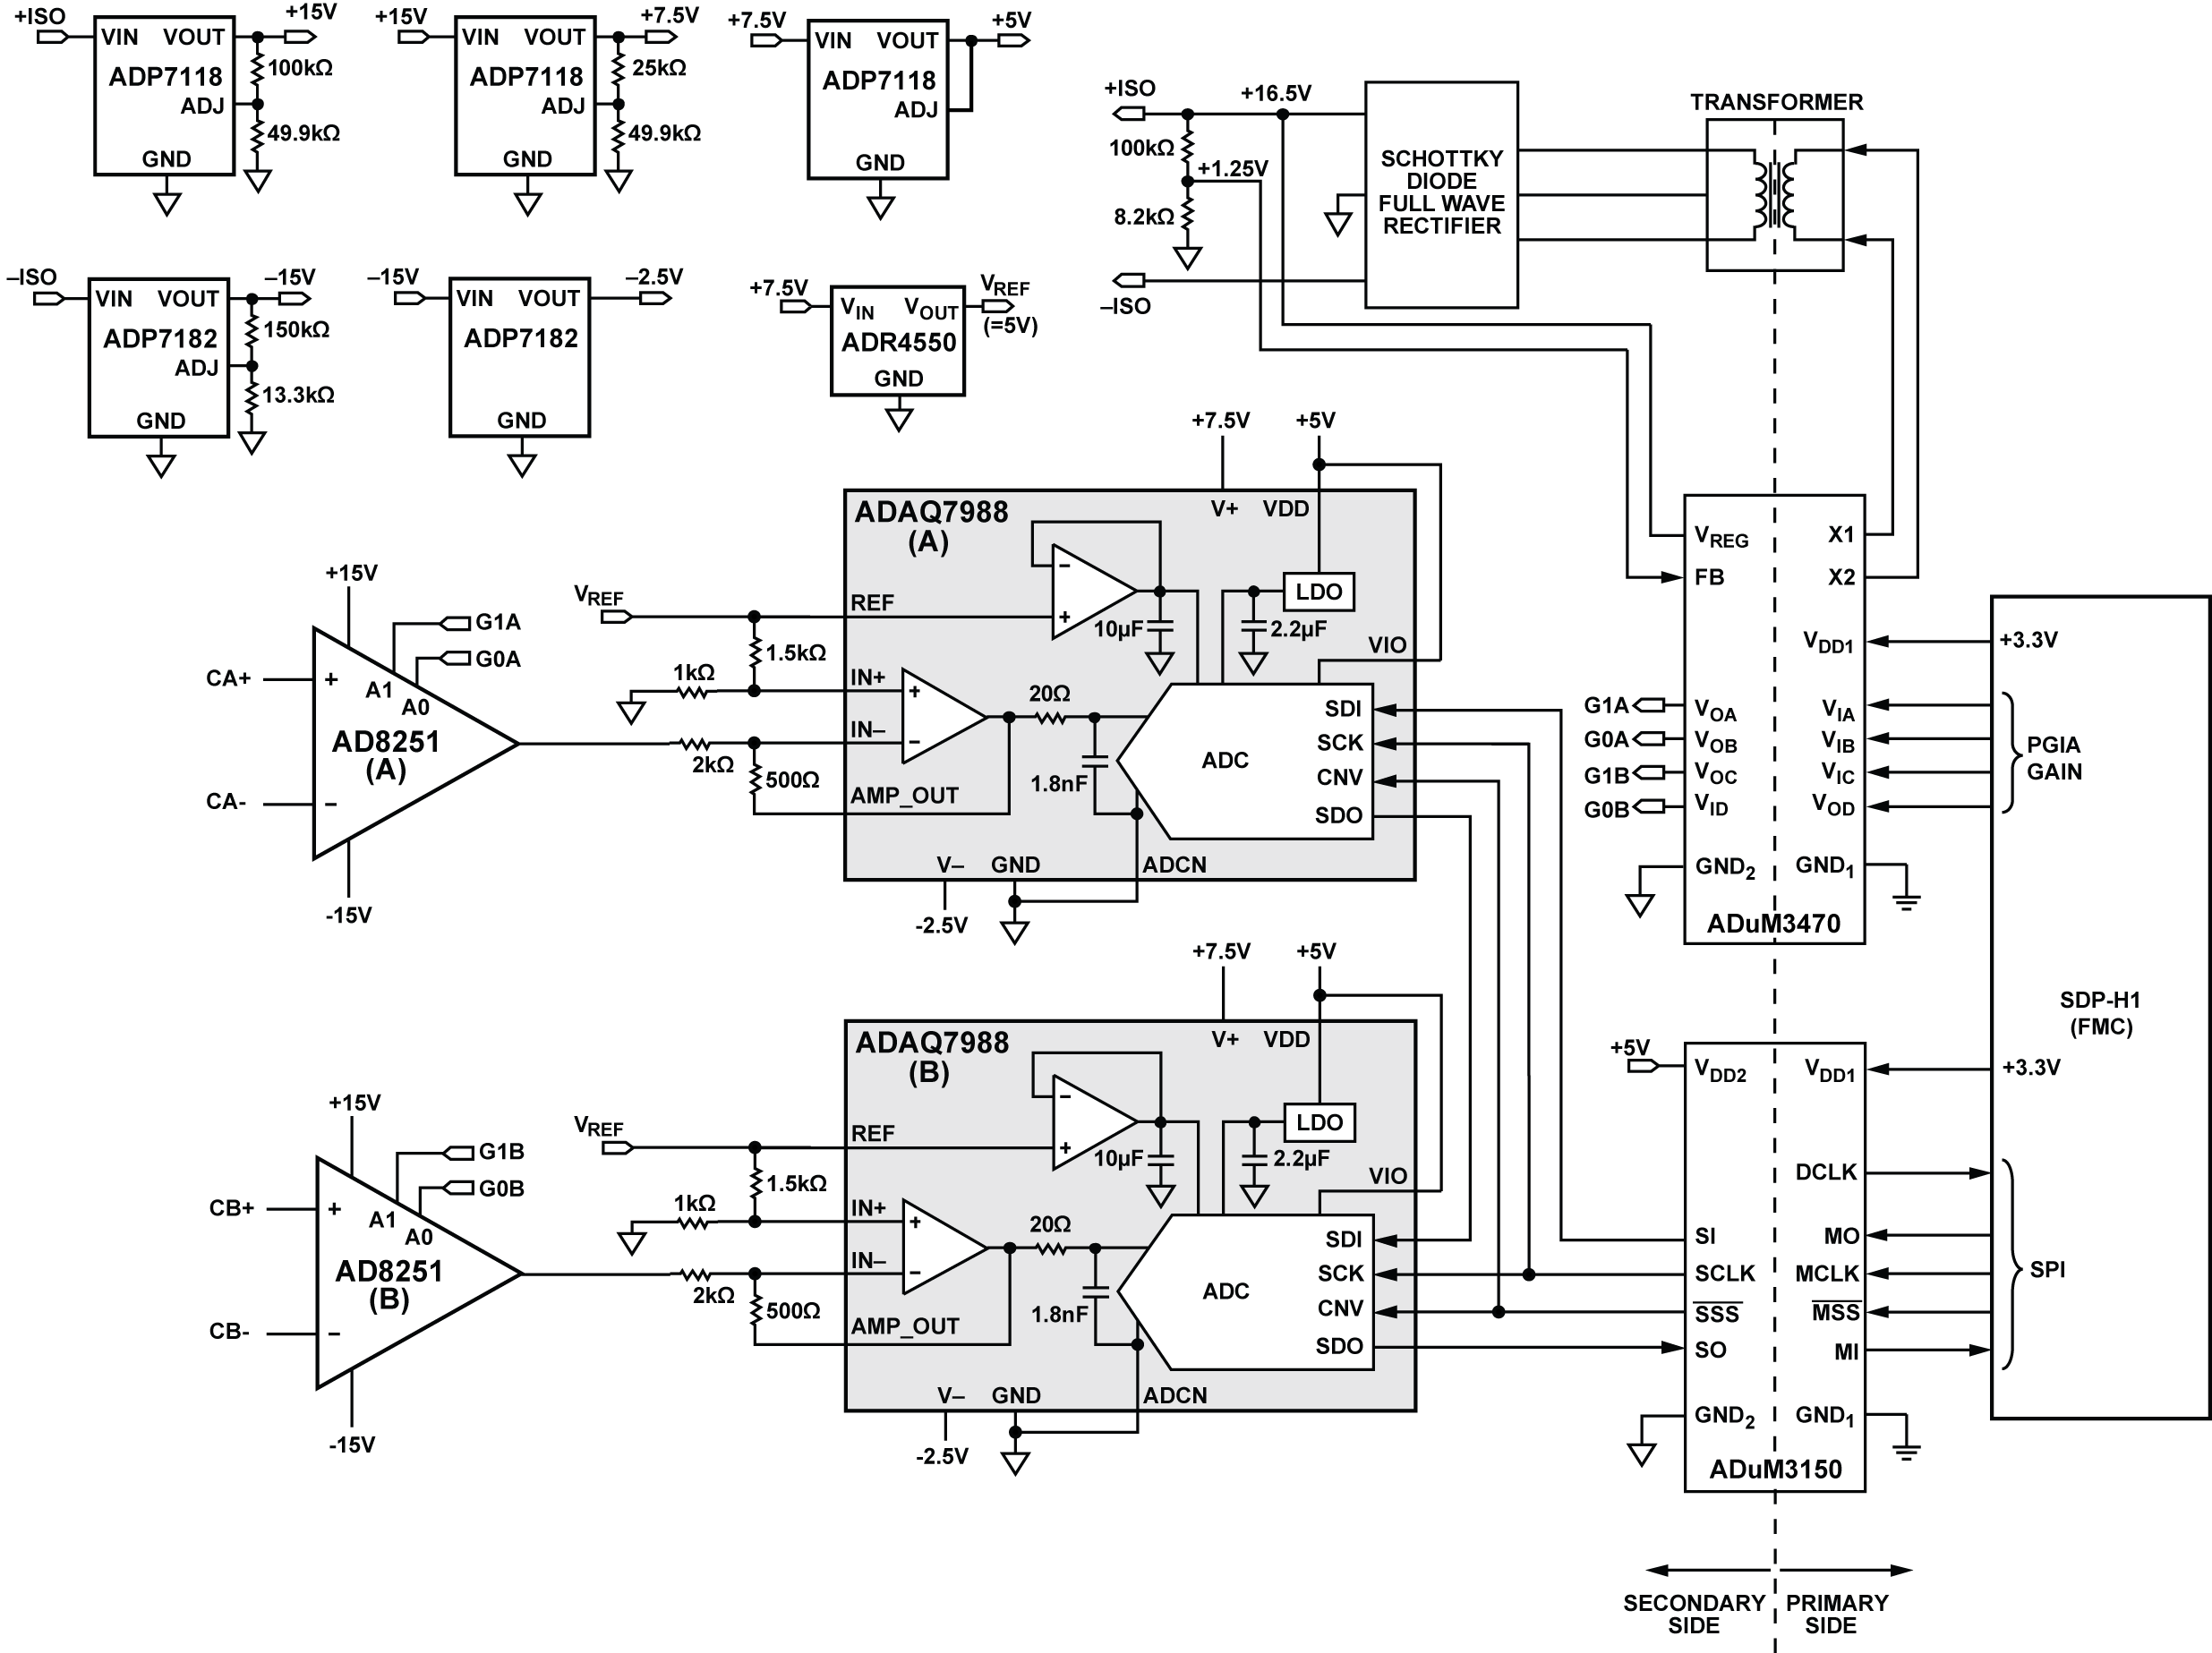 Cn 0393 Evaluation Board And Software User Guide Analog Devices Wiki Circuit Wizard Is A Easy Program To Draw Your Electronic Circuits On Required Equipment